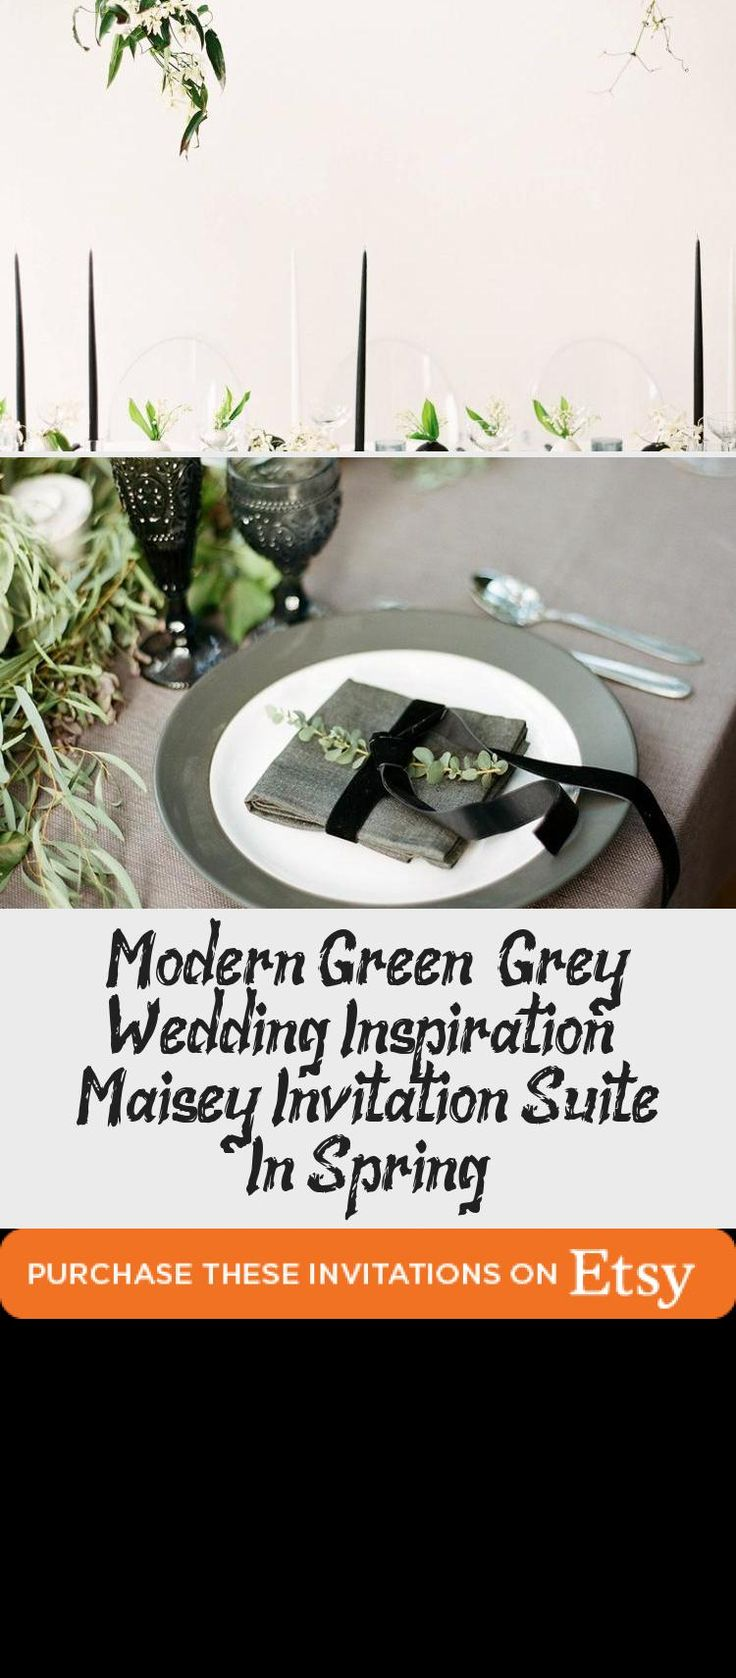 Botanical illustration Green & Grey Wedding inspiration perfect for a modern garden wedding or an urban wedding dripping with greenery. Palette of greens - emerald and sage. Earthy and organic with clean, modern touches. Bridesmaid dresses #BridesmaidDressesColors #BridesmaidDressesBlue #GreenBridesmaidDresses #BridesmaidDressesDustyRose #SageBridesmaidDresses